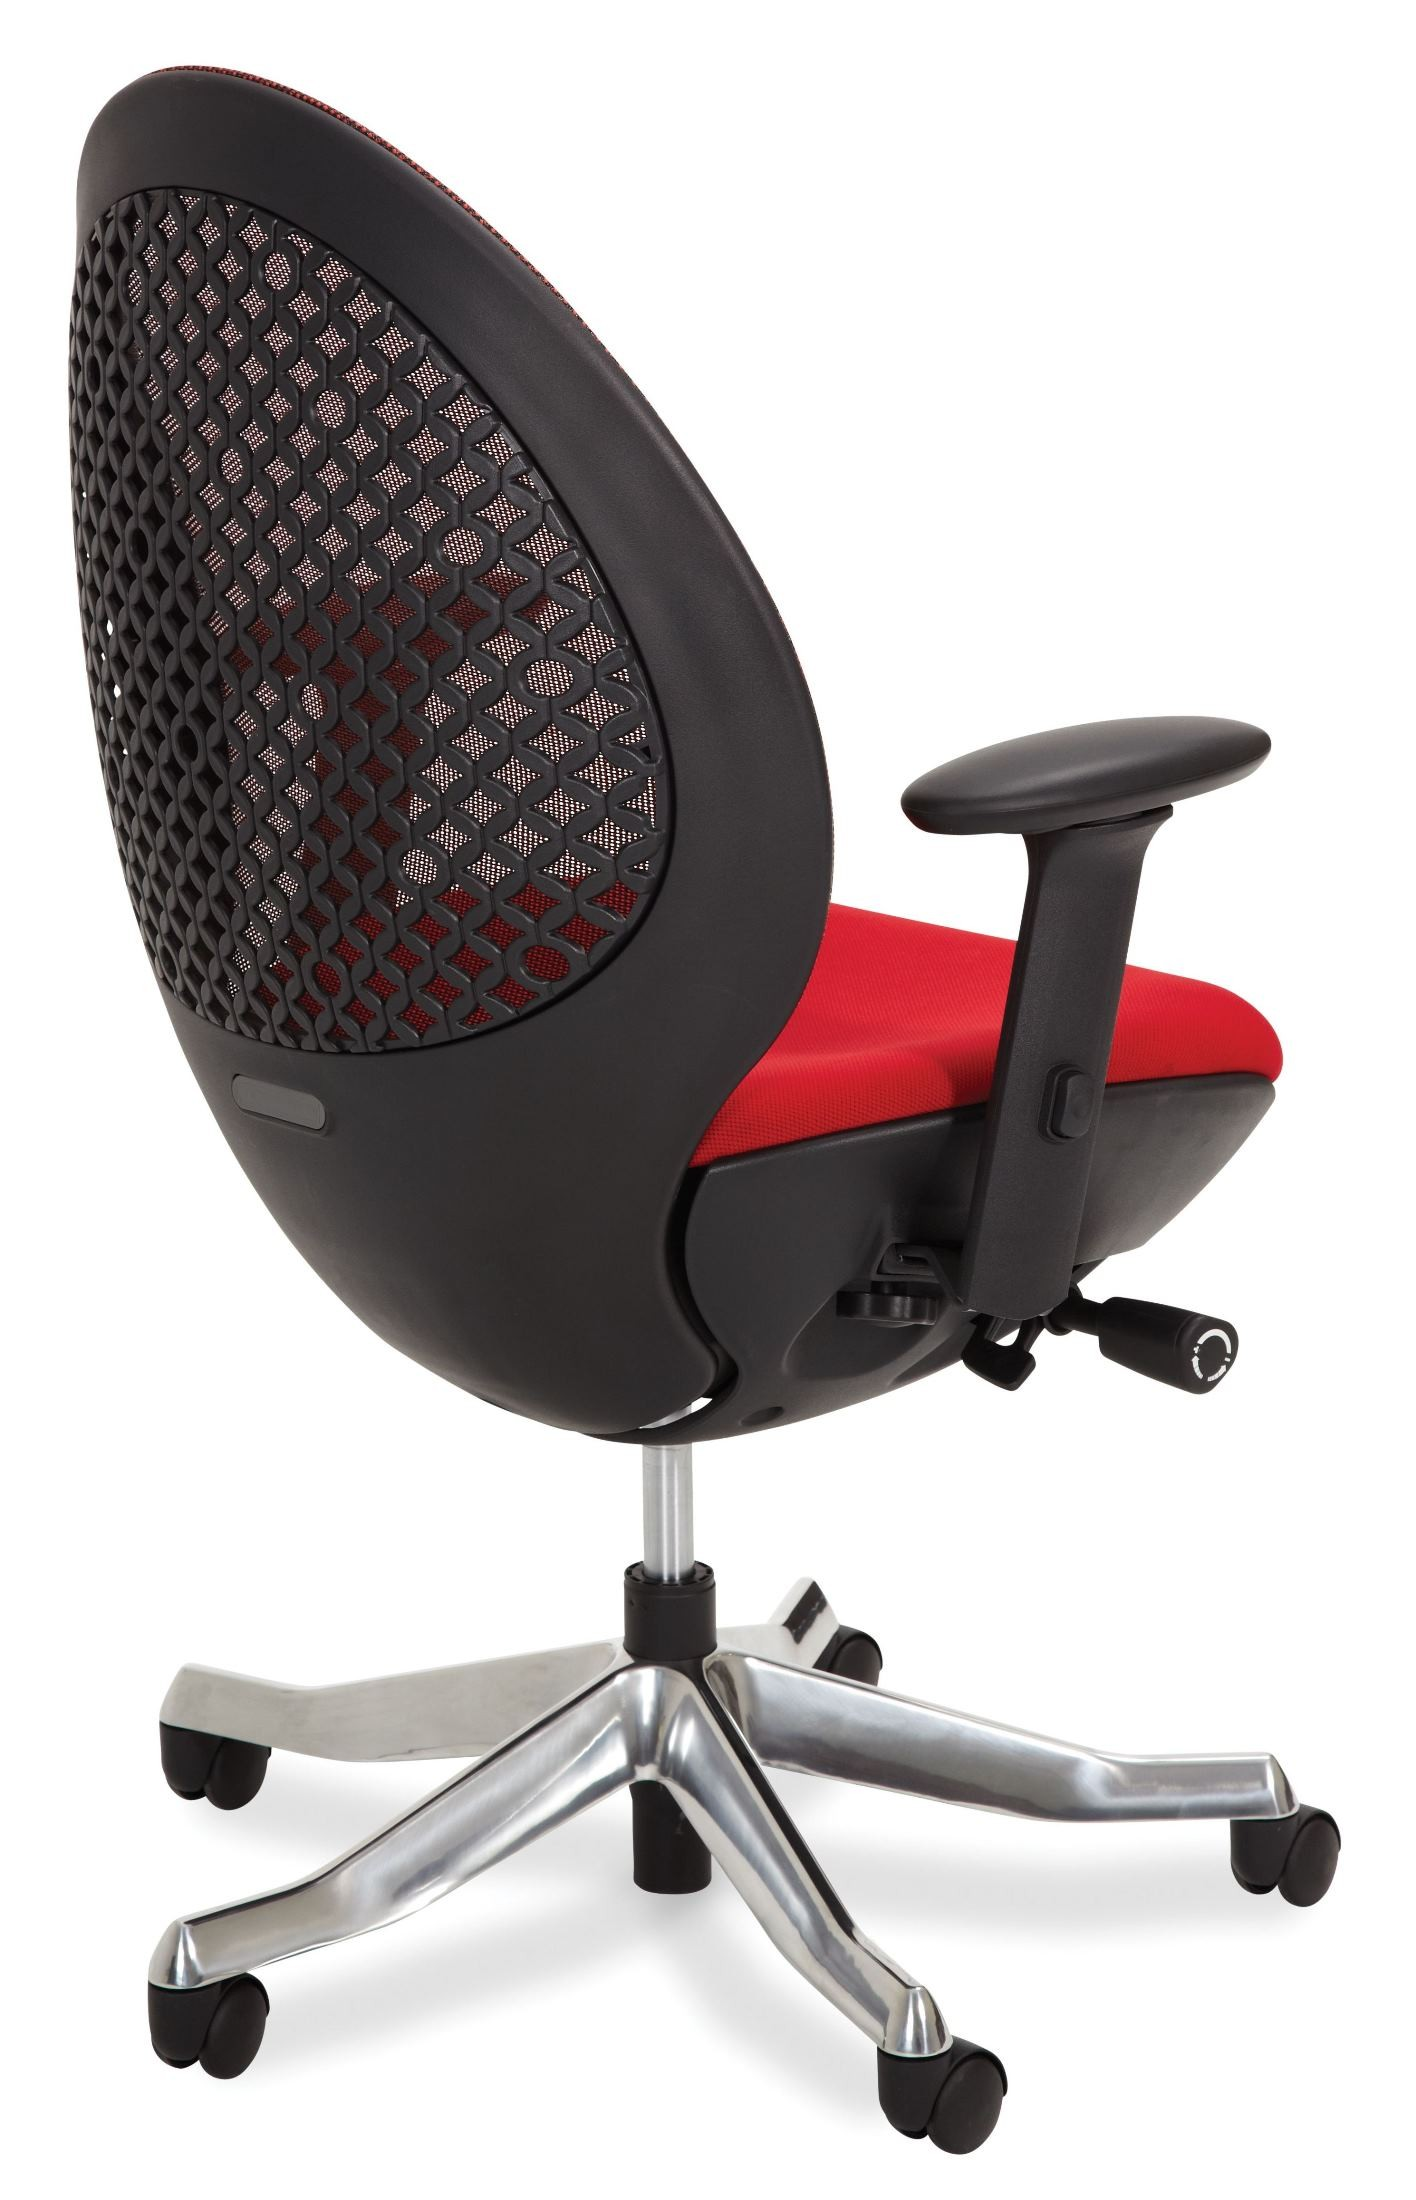 Red Swivel Chair Linq Mid Red Swivel Chair From Aico C03 66pa 03